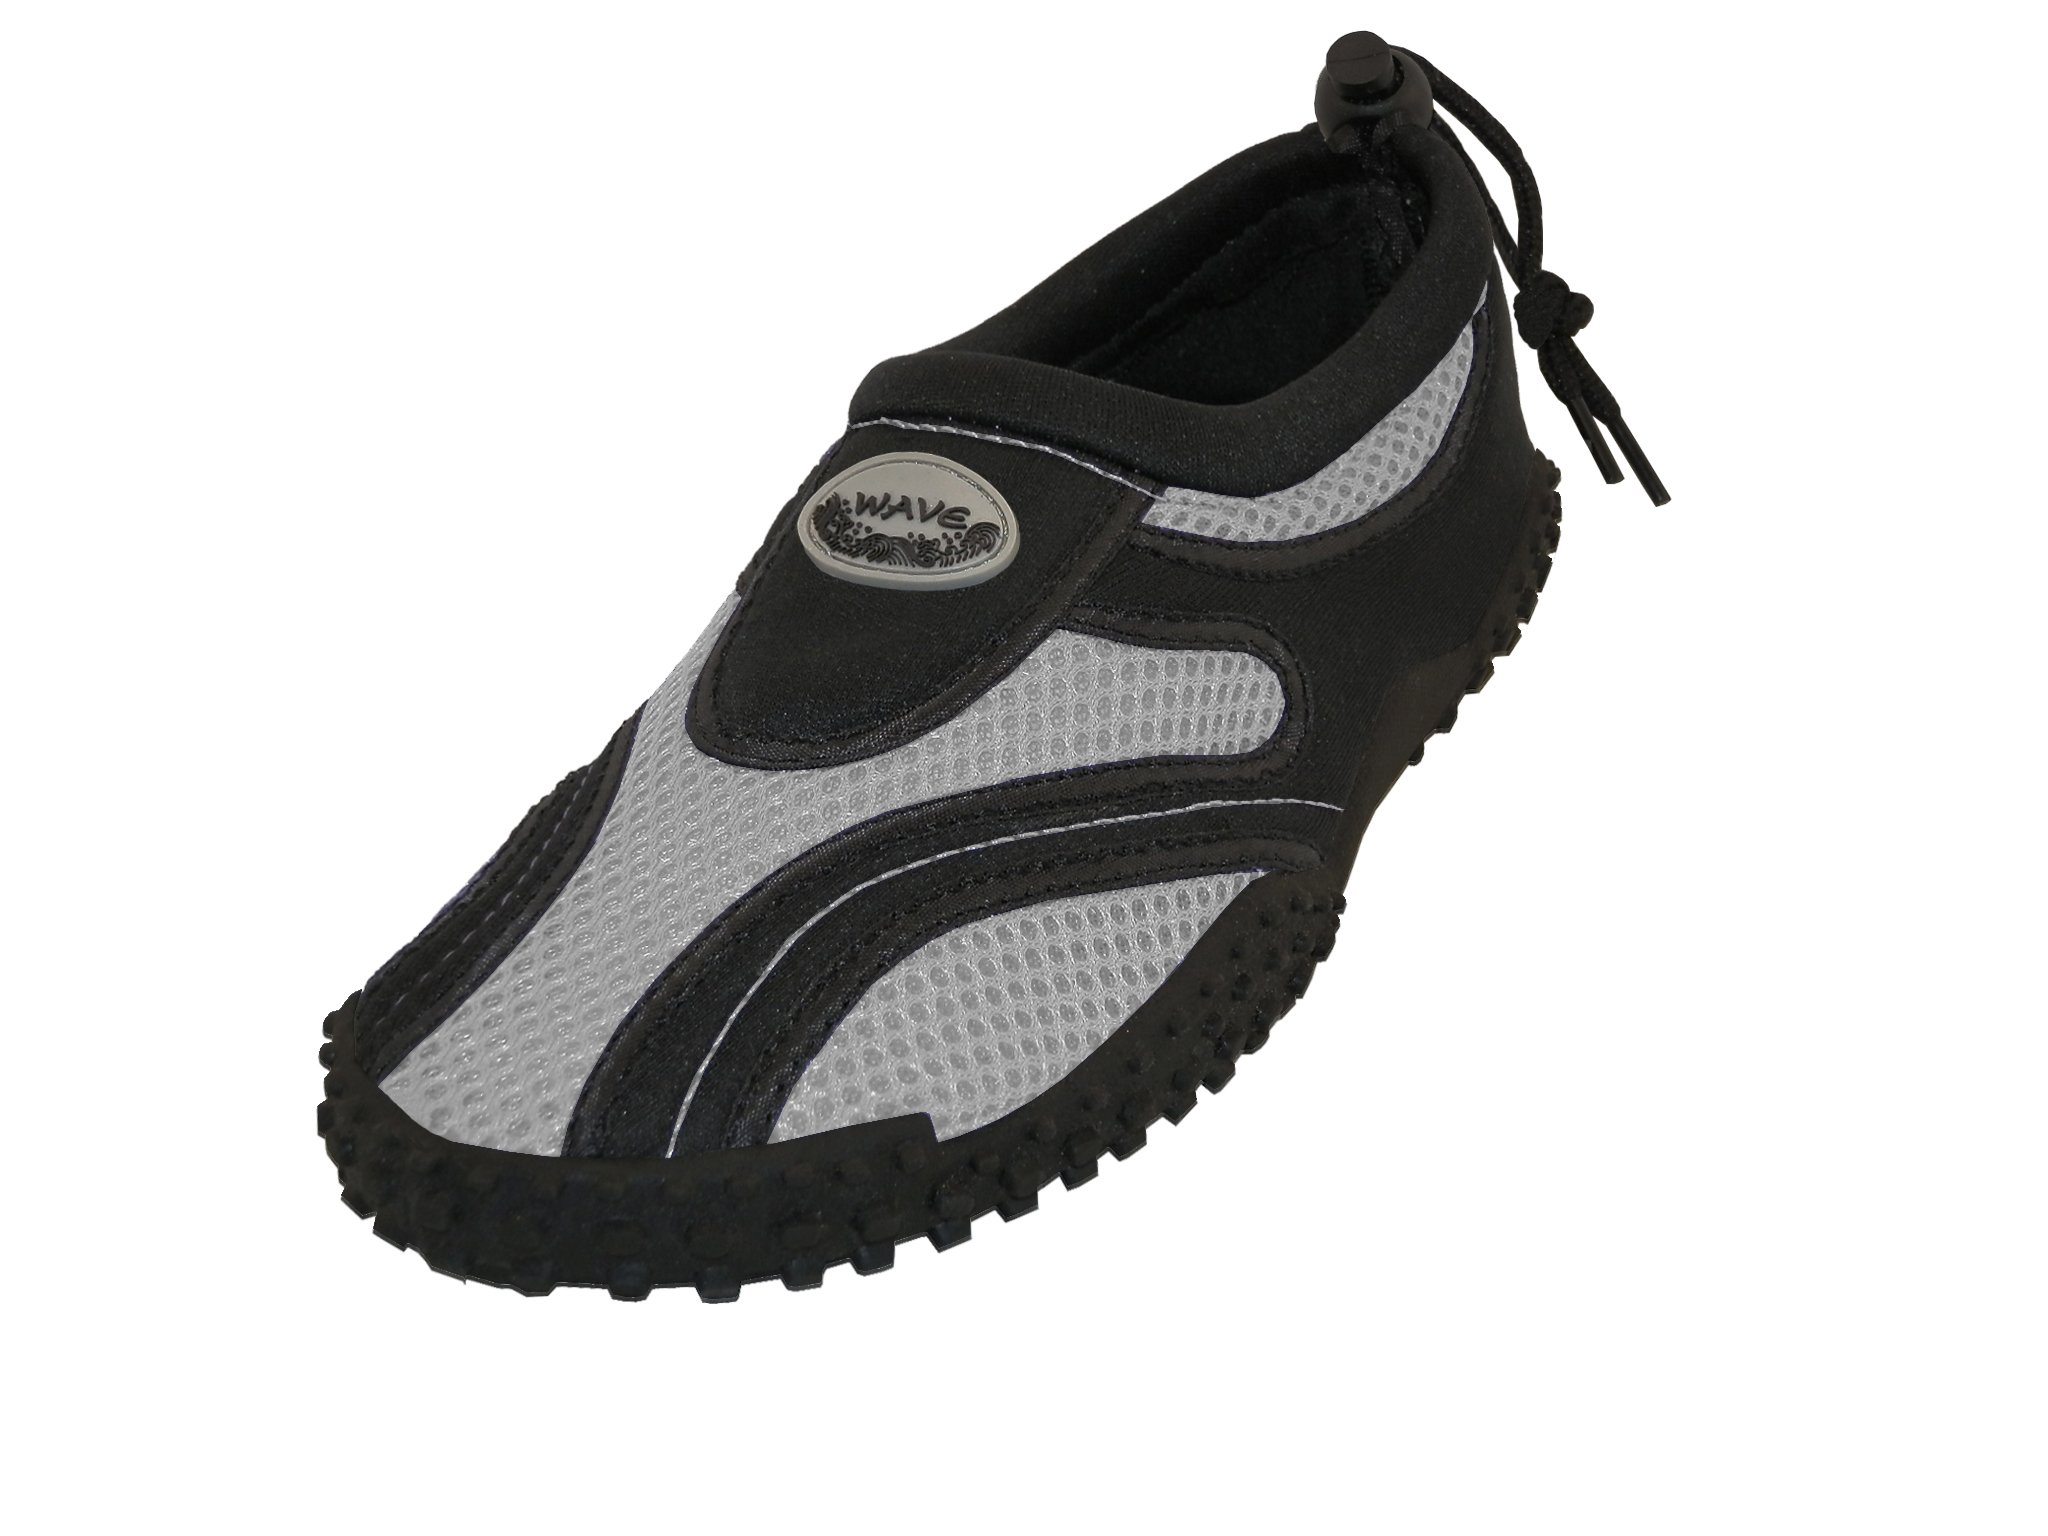 Wave Men's Waterproof Water Shoes, Black/Grey, 10 D(M) US by The Wave